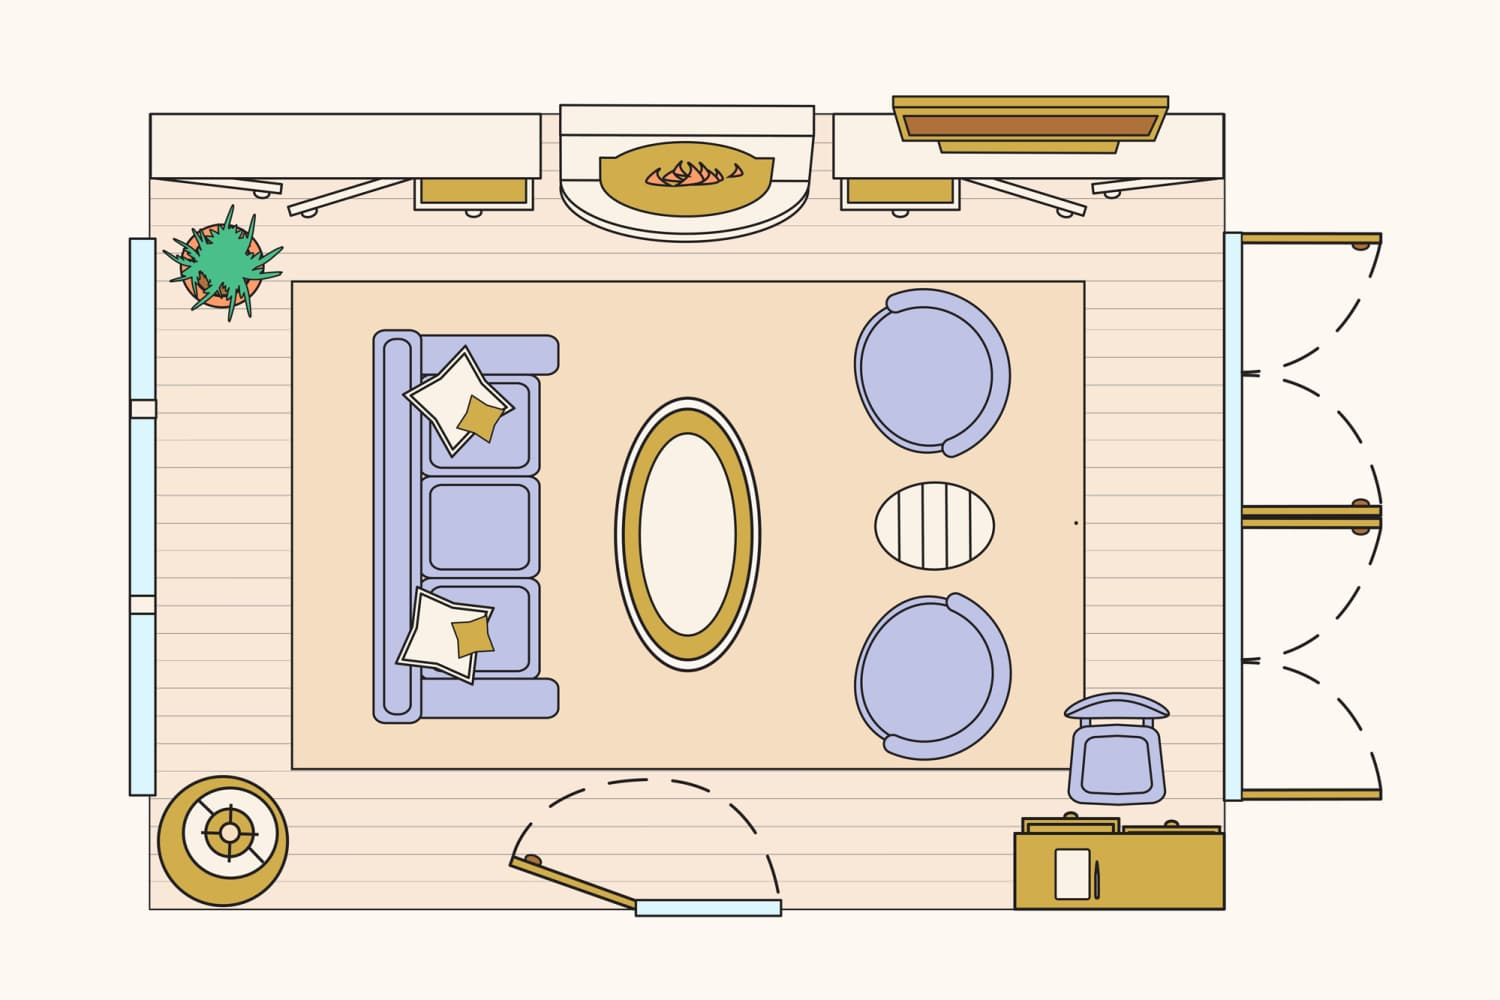 How To Lay Out A Kitchen Floor Plan: 10 Living Room Layouts To Try: Sample Floorplans